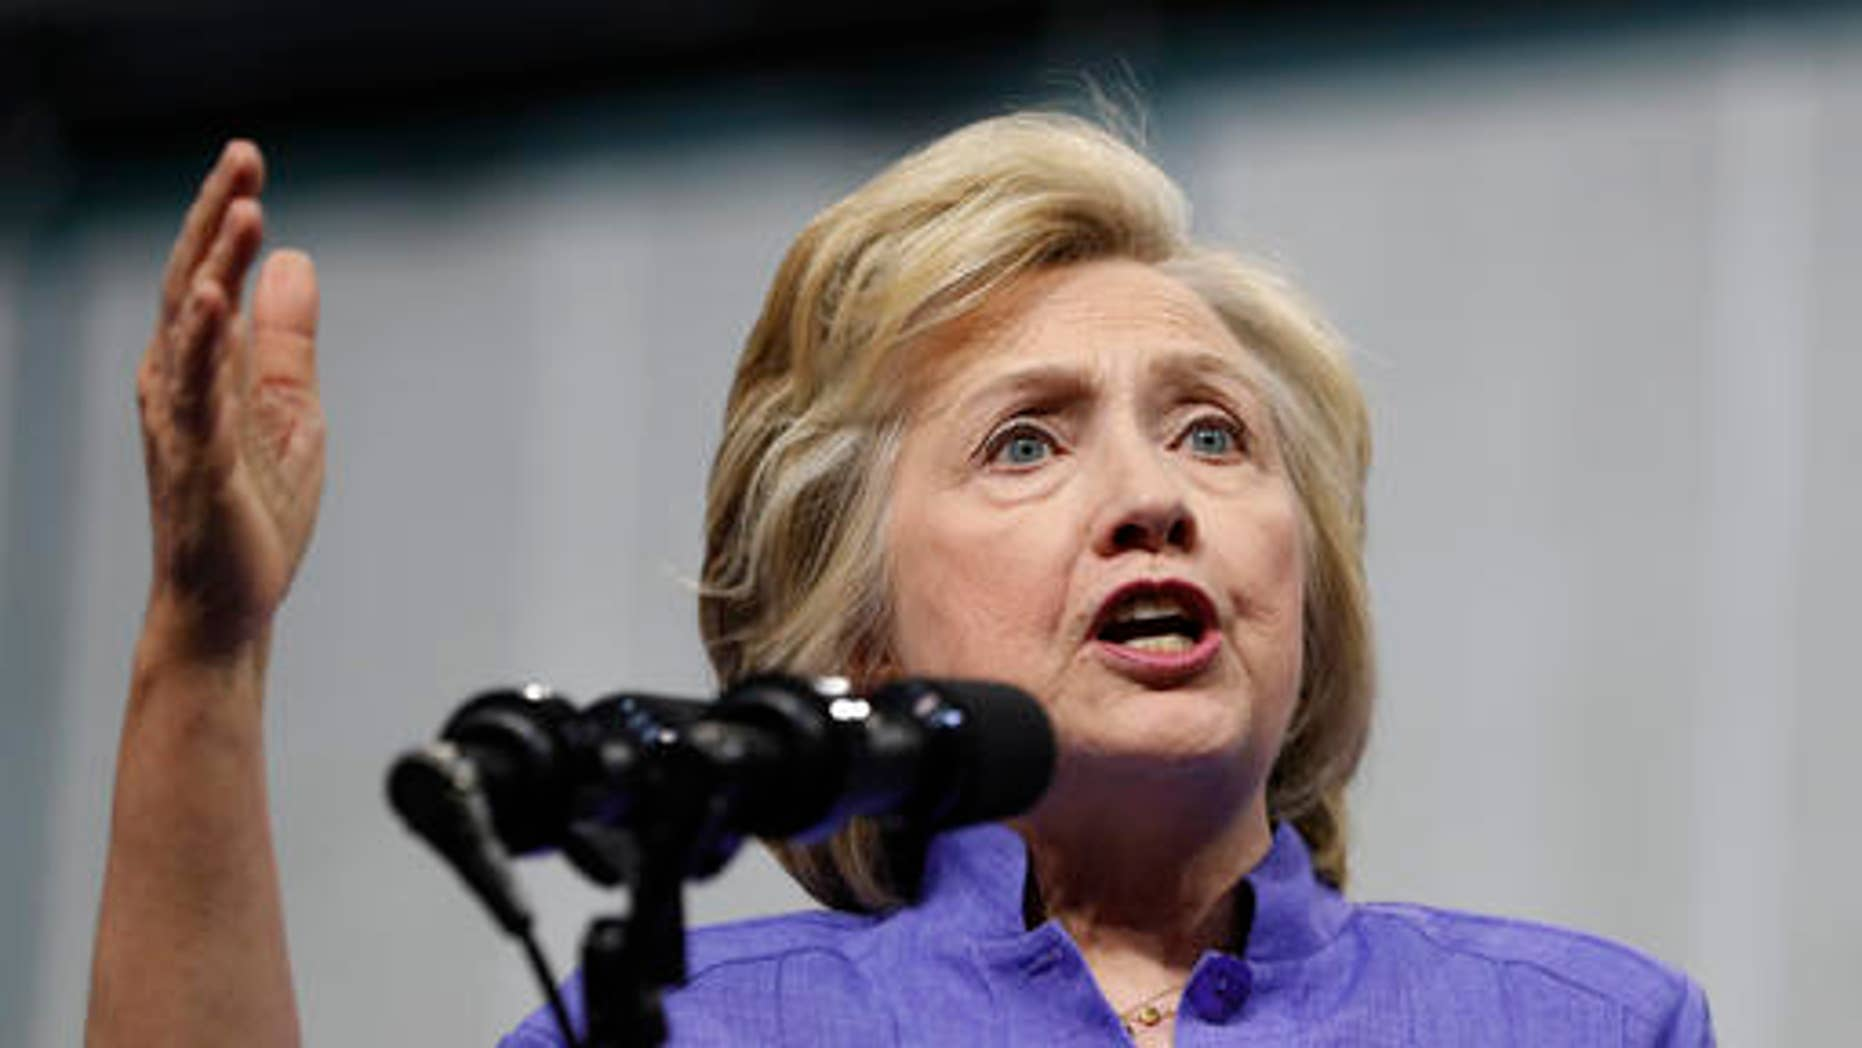 Democratic presidential candidate Hillary Clinton speaks at a campaign event.